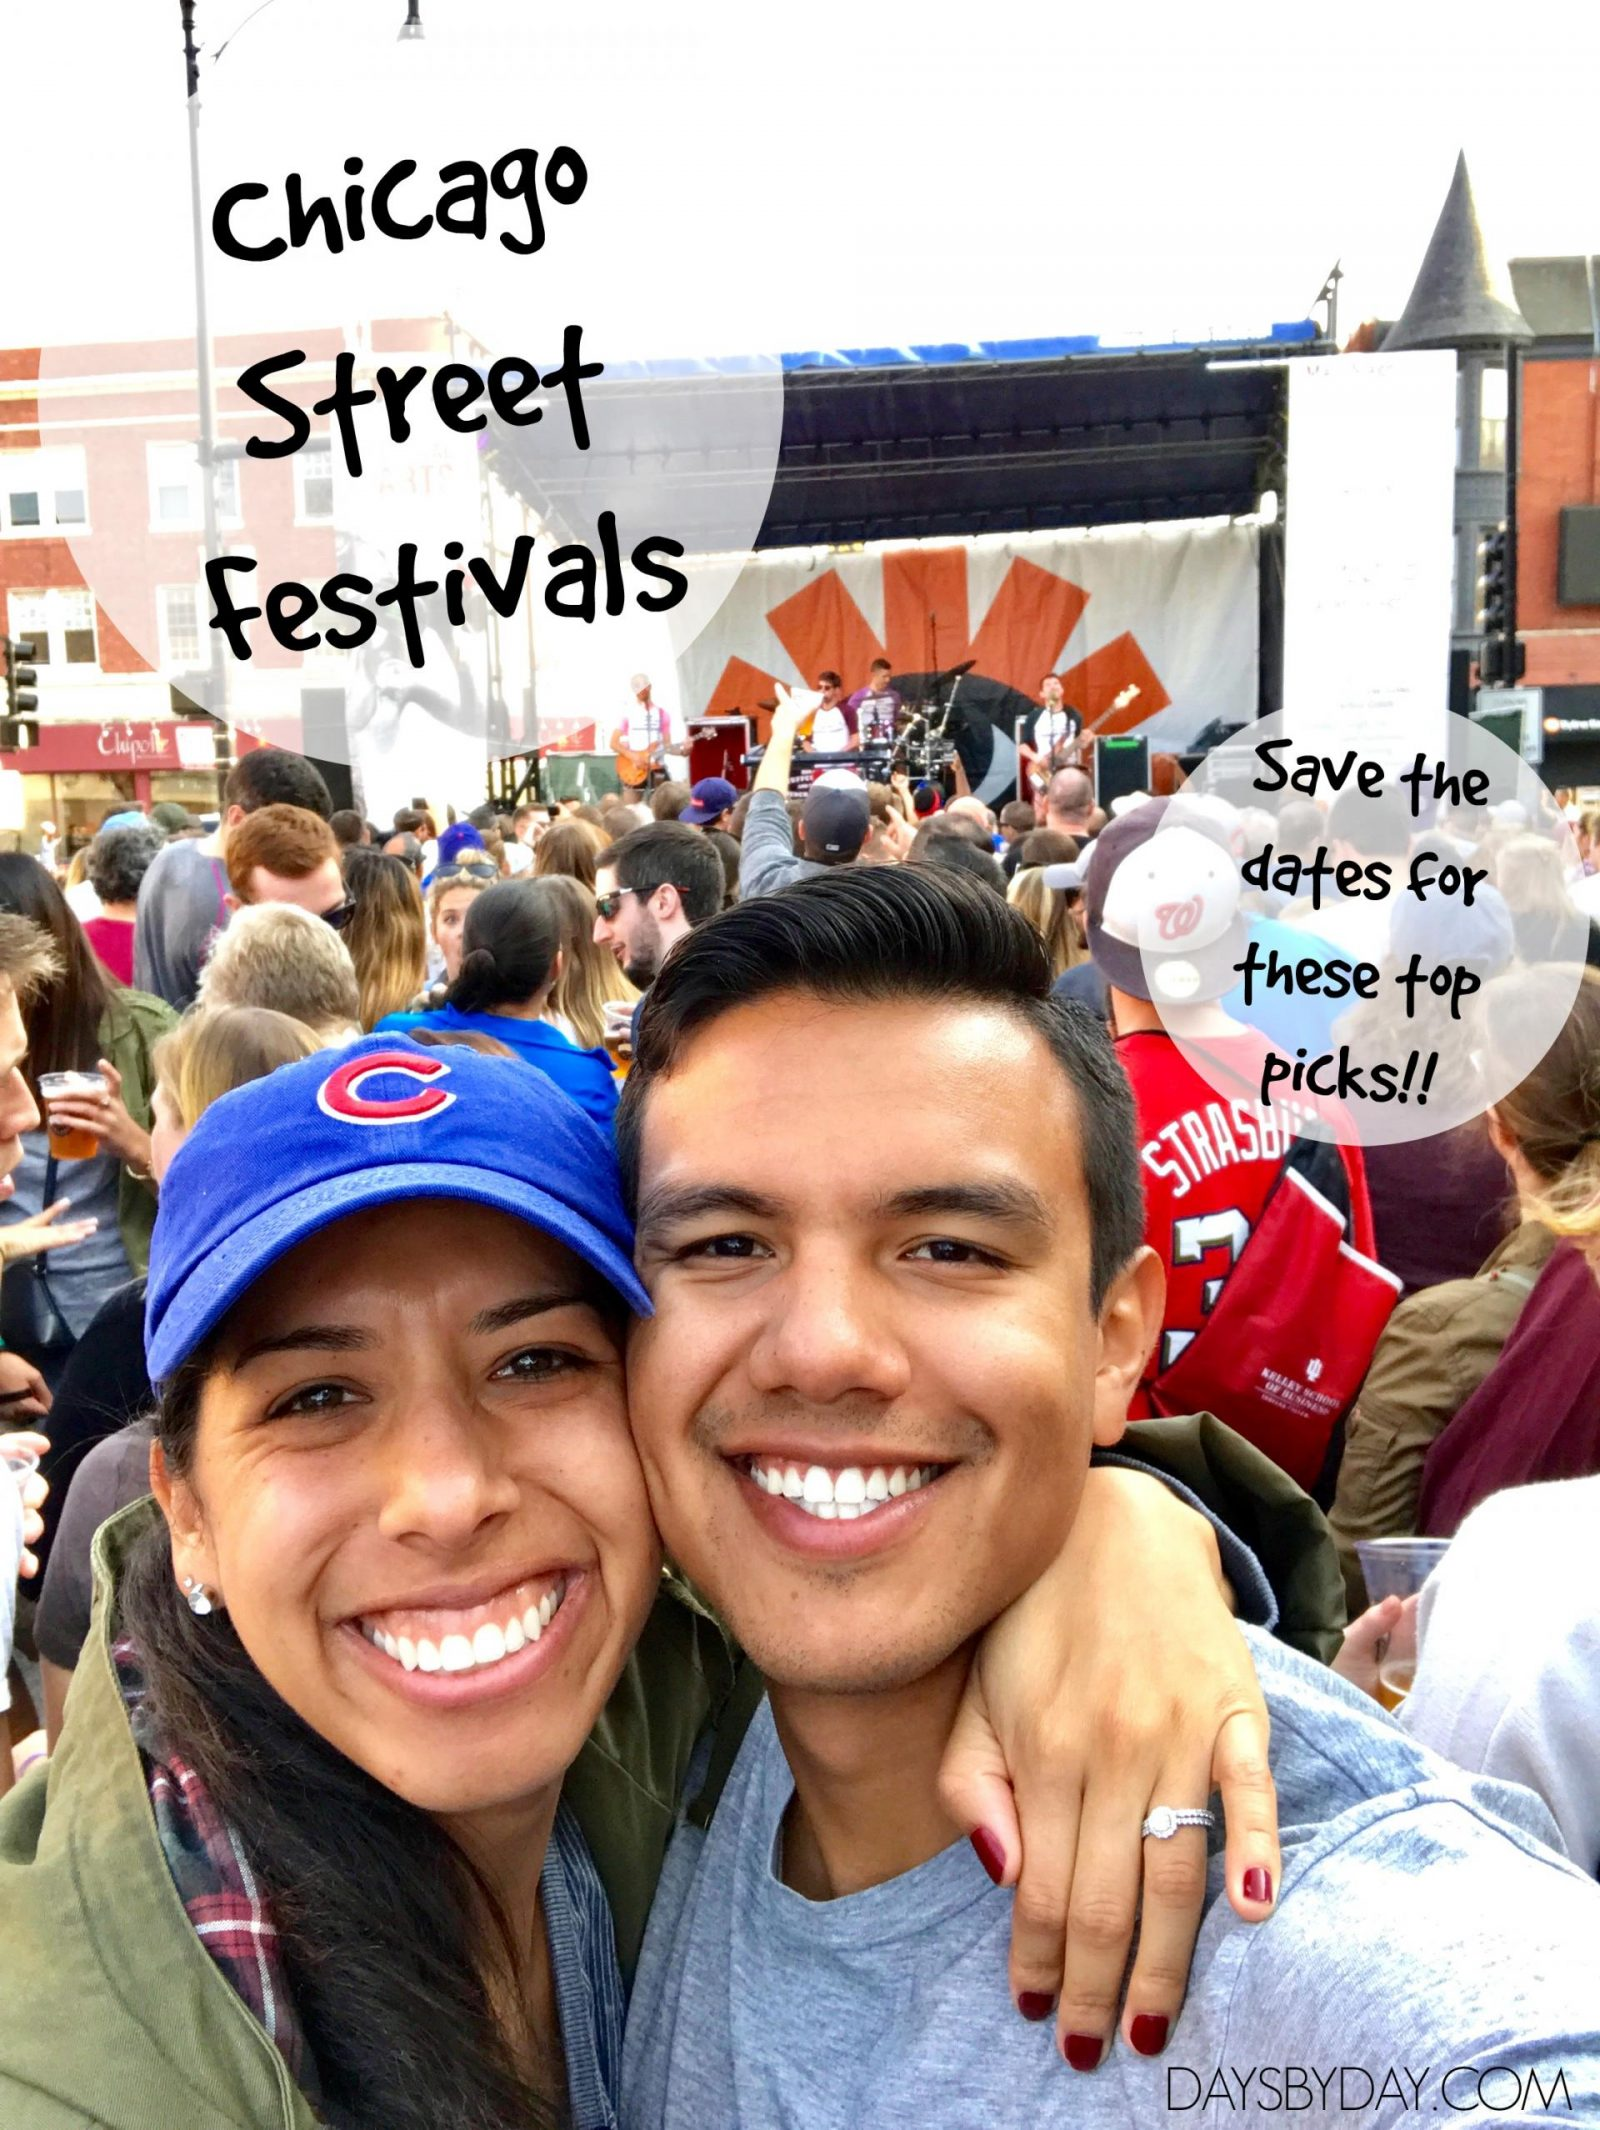 Chicago Street Festivals: Save the Date!